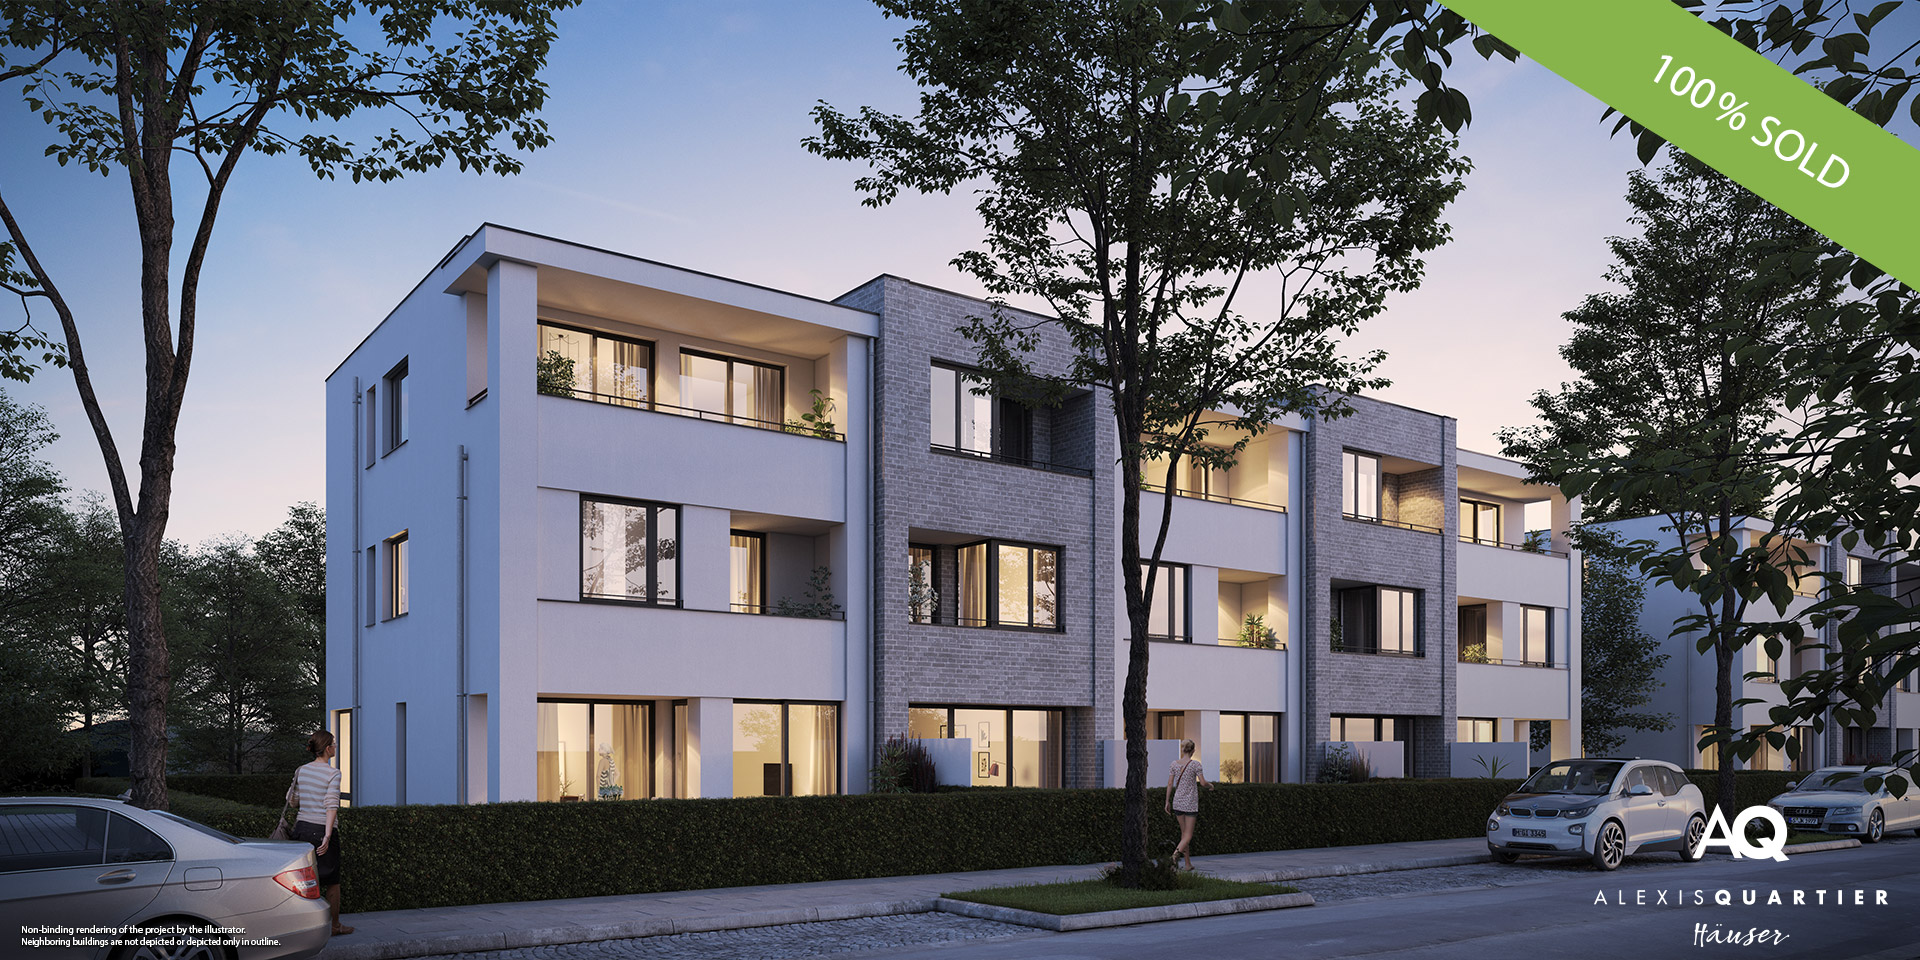 'ALEXISQUARTIER - houses' in Munich-Perlach: All houses sold